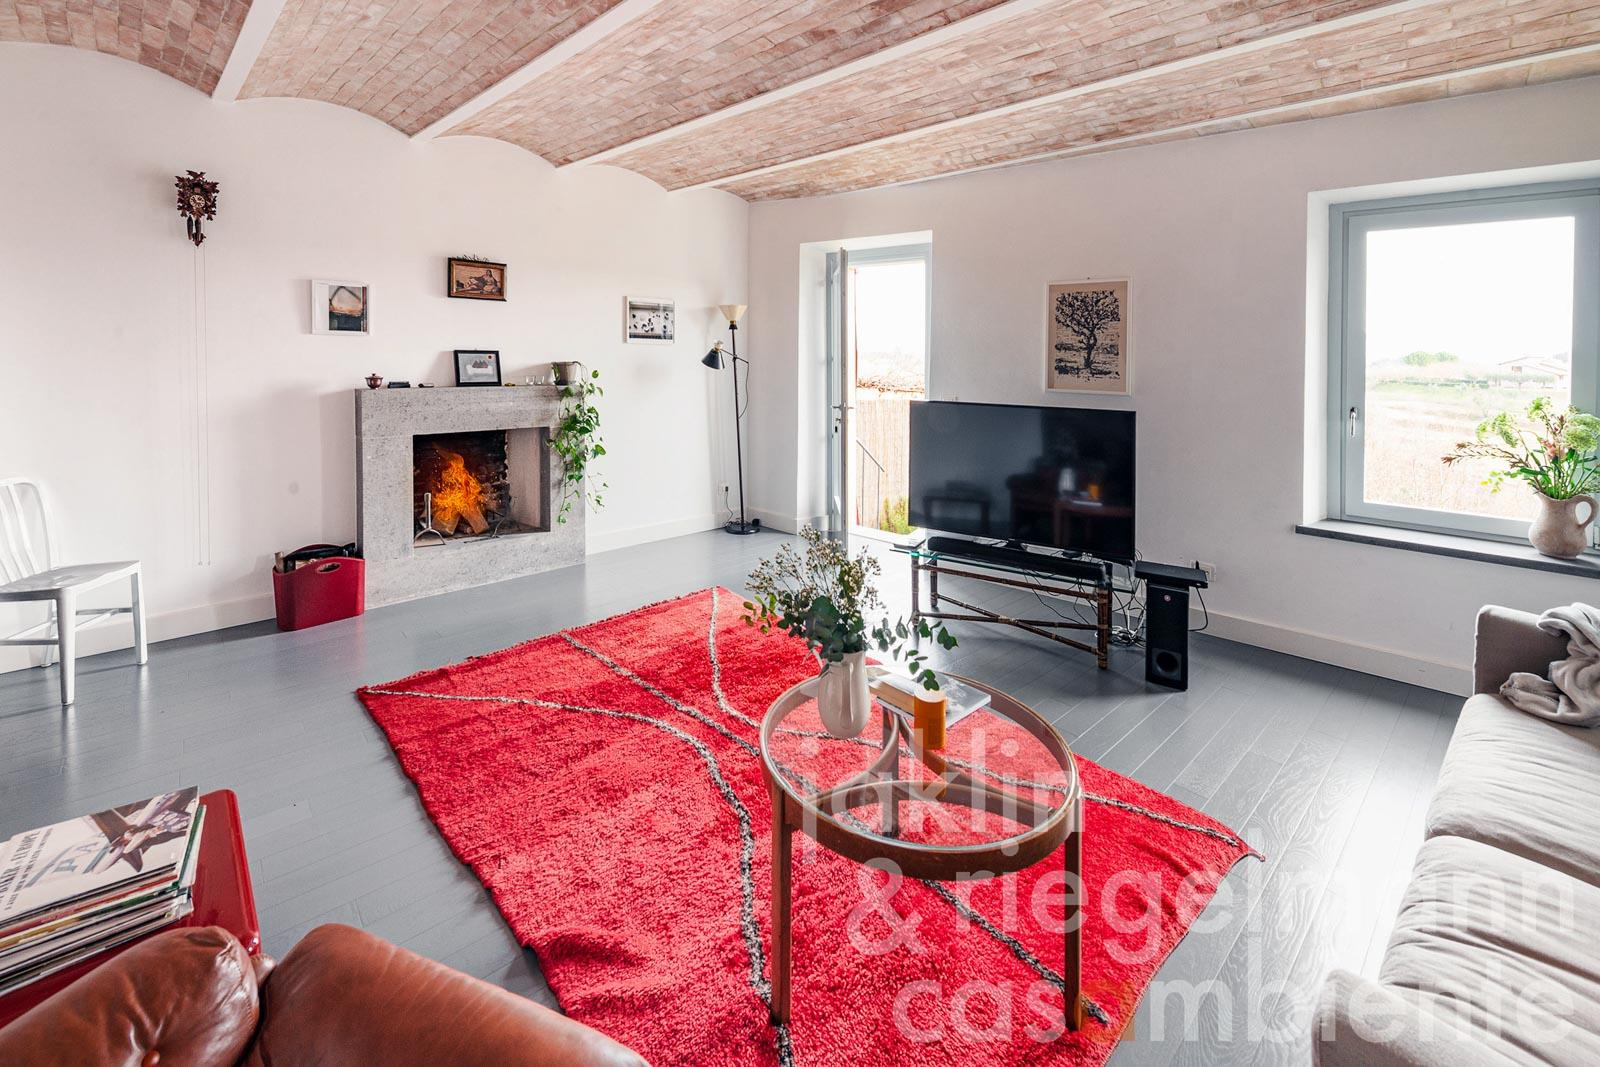 Stunning town house with private garden south of Lake Trasimeno in Umbria